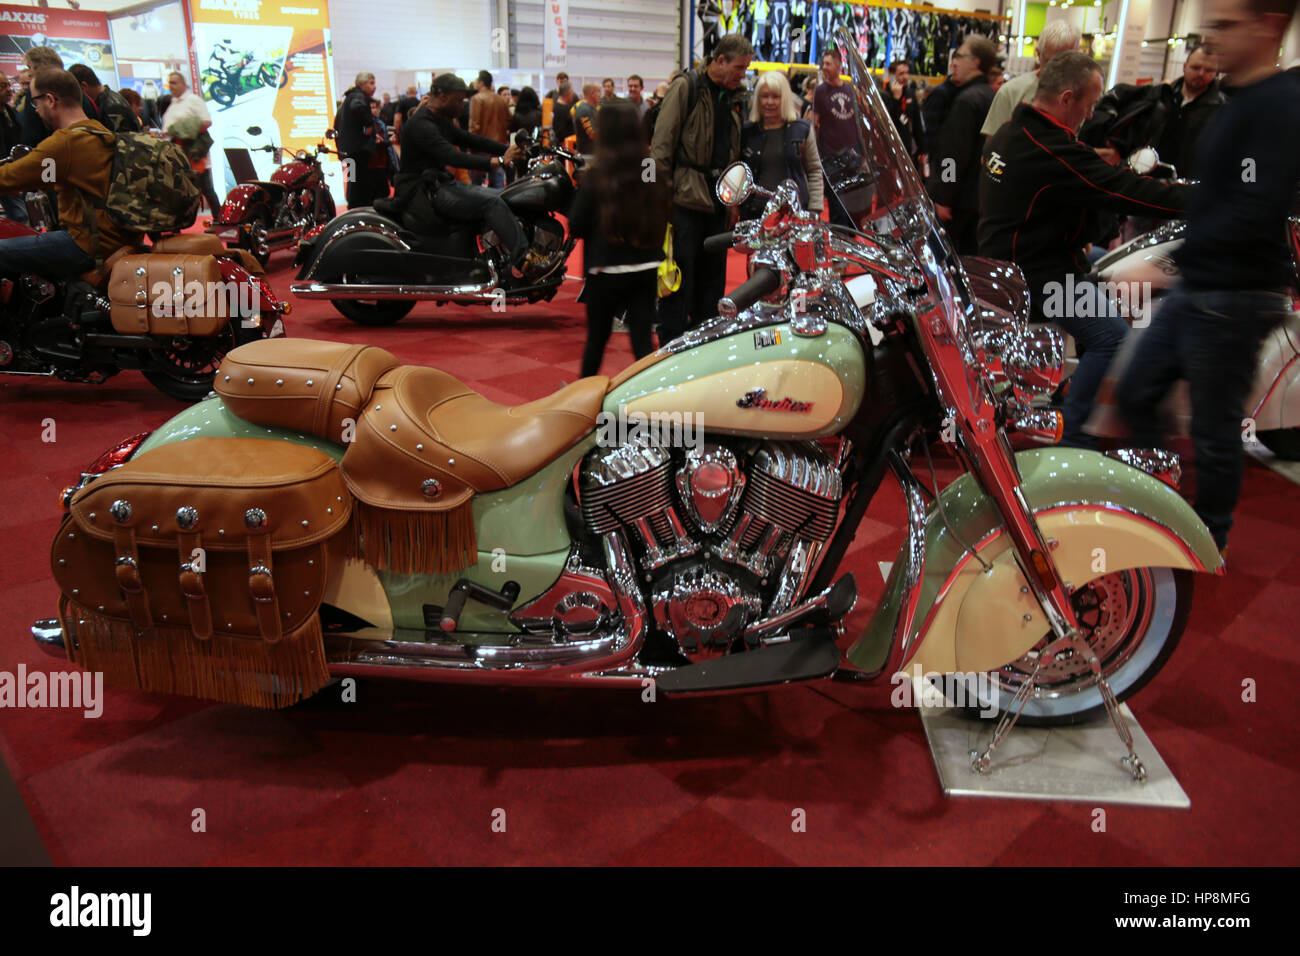 London, UK. 19th Feb, 2017. The Carole Nash MCN Motorcycle Show 2017 had 22 of the world's leading manufacturers - Stock Image